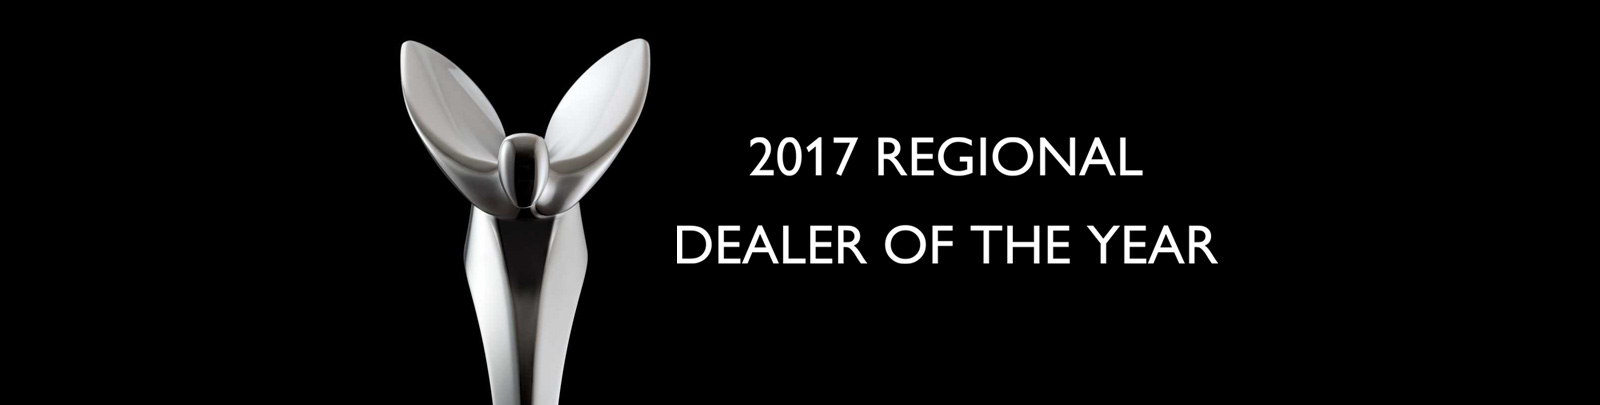 2017 REGIONAL DEALER OF THE YEAR